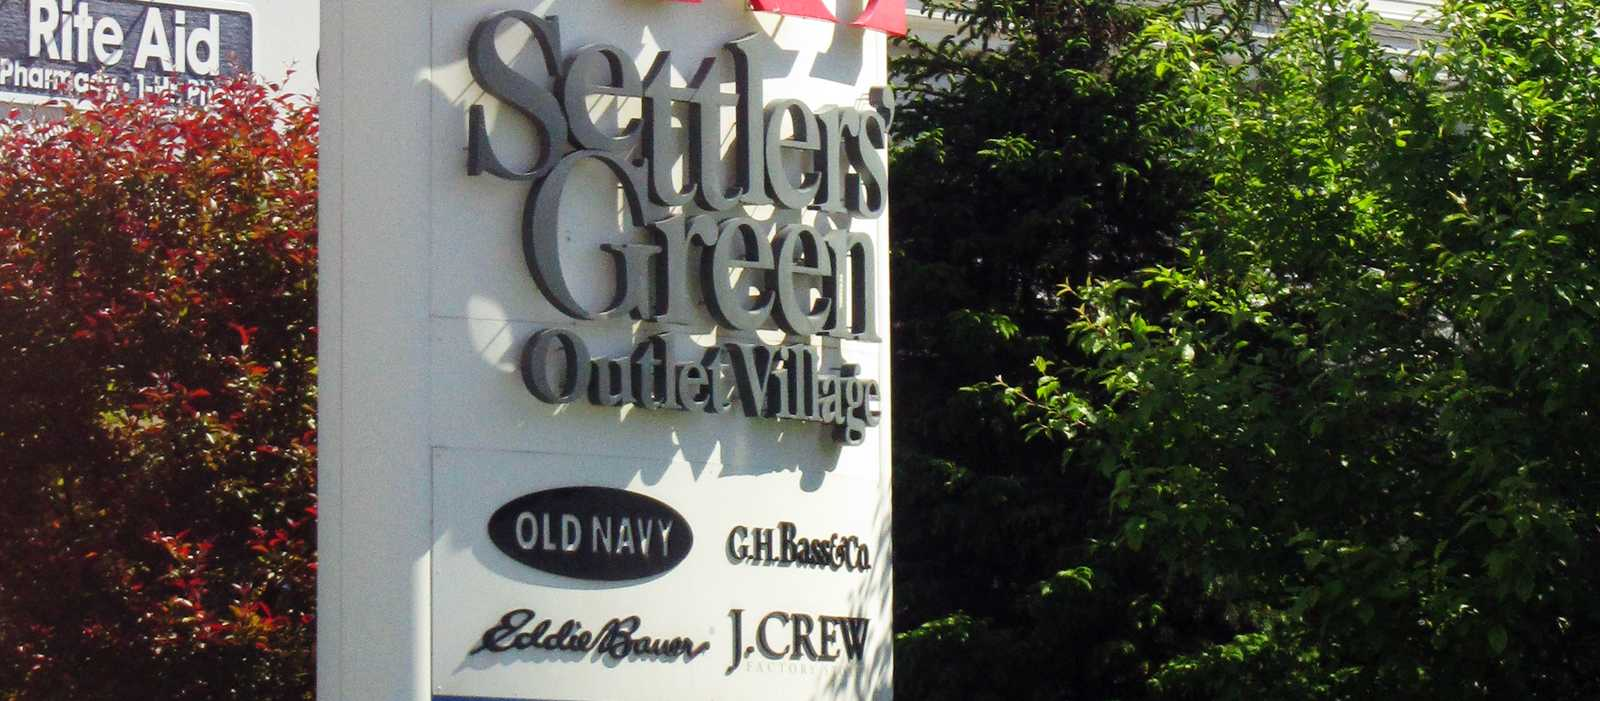 Settlers Green Outlet